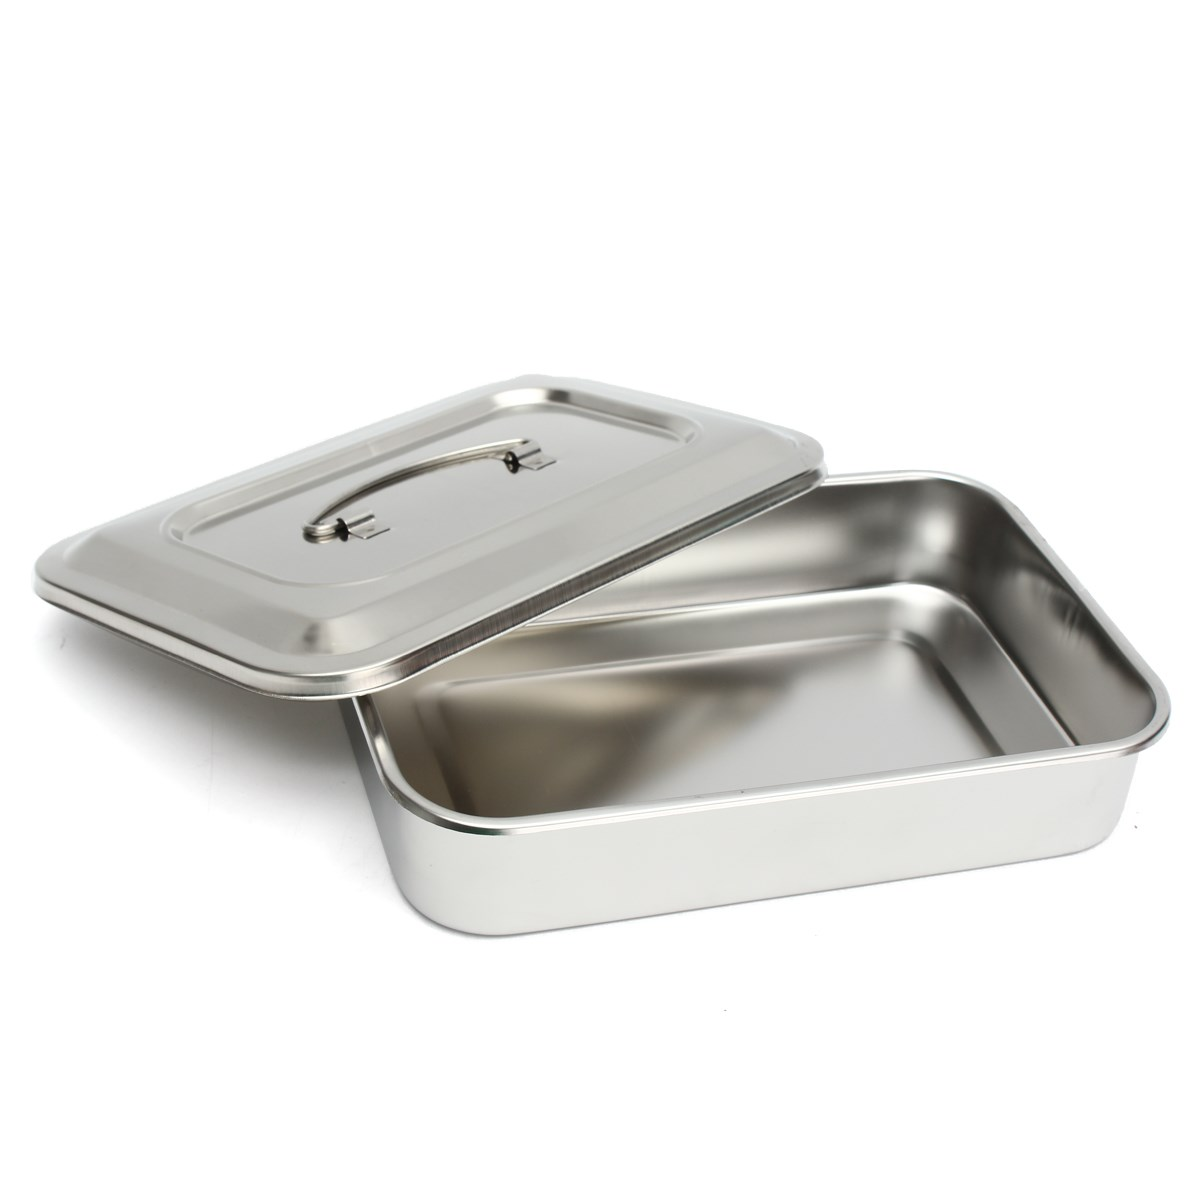 aliexpresscom  buy stainless steel dental instruments tray  - aliexpresscom  buy stainless steel dental instruments tray surgicalnursing medical equipment steriliser container for dentist tool storage boxfrom